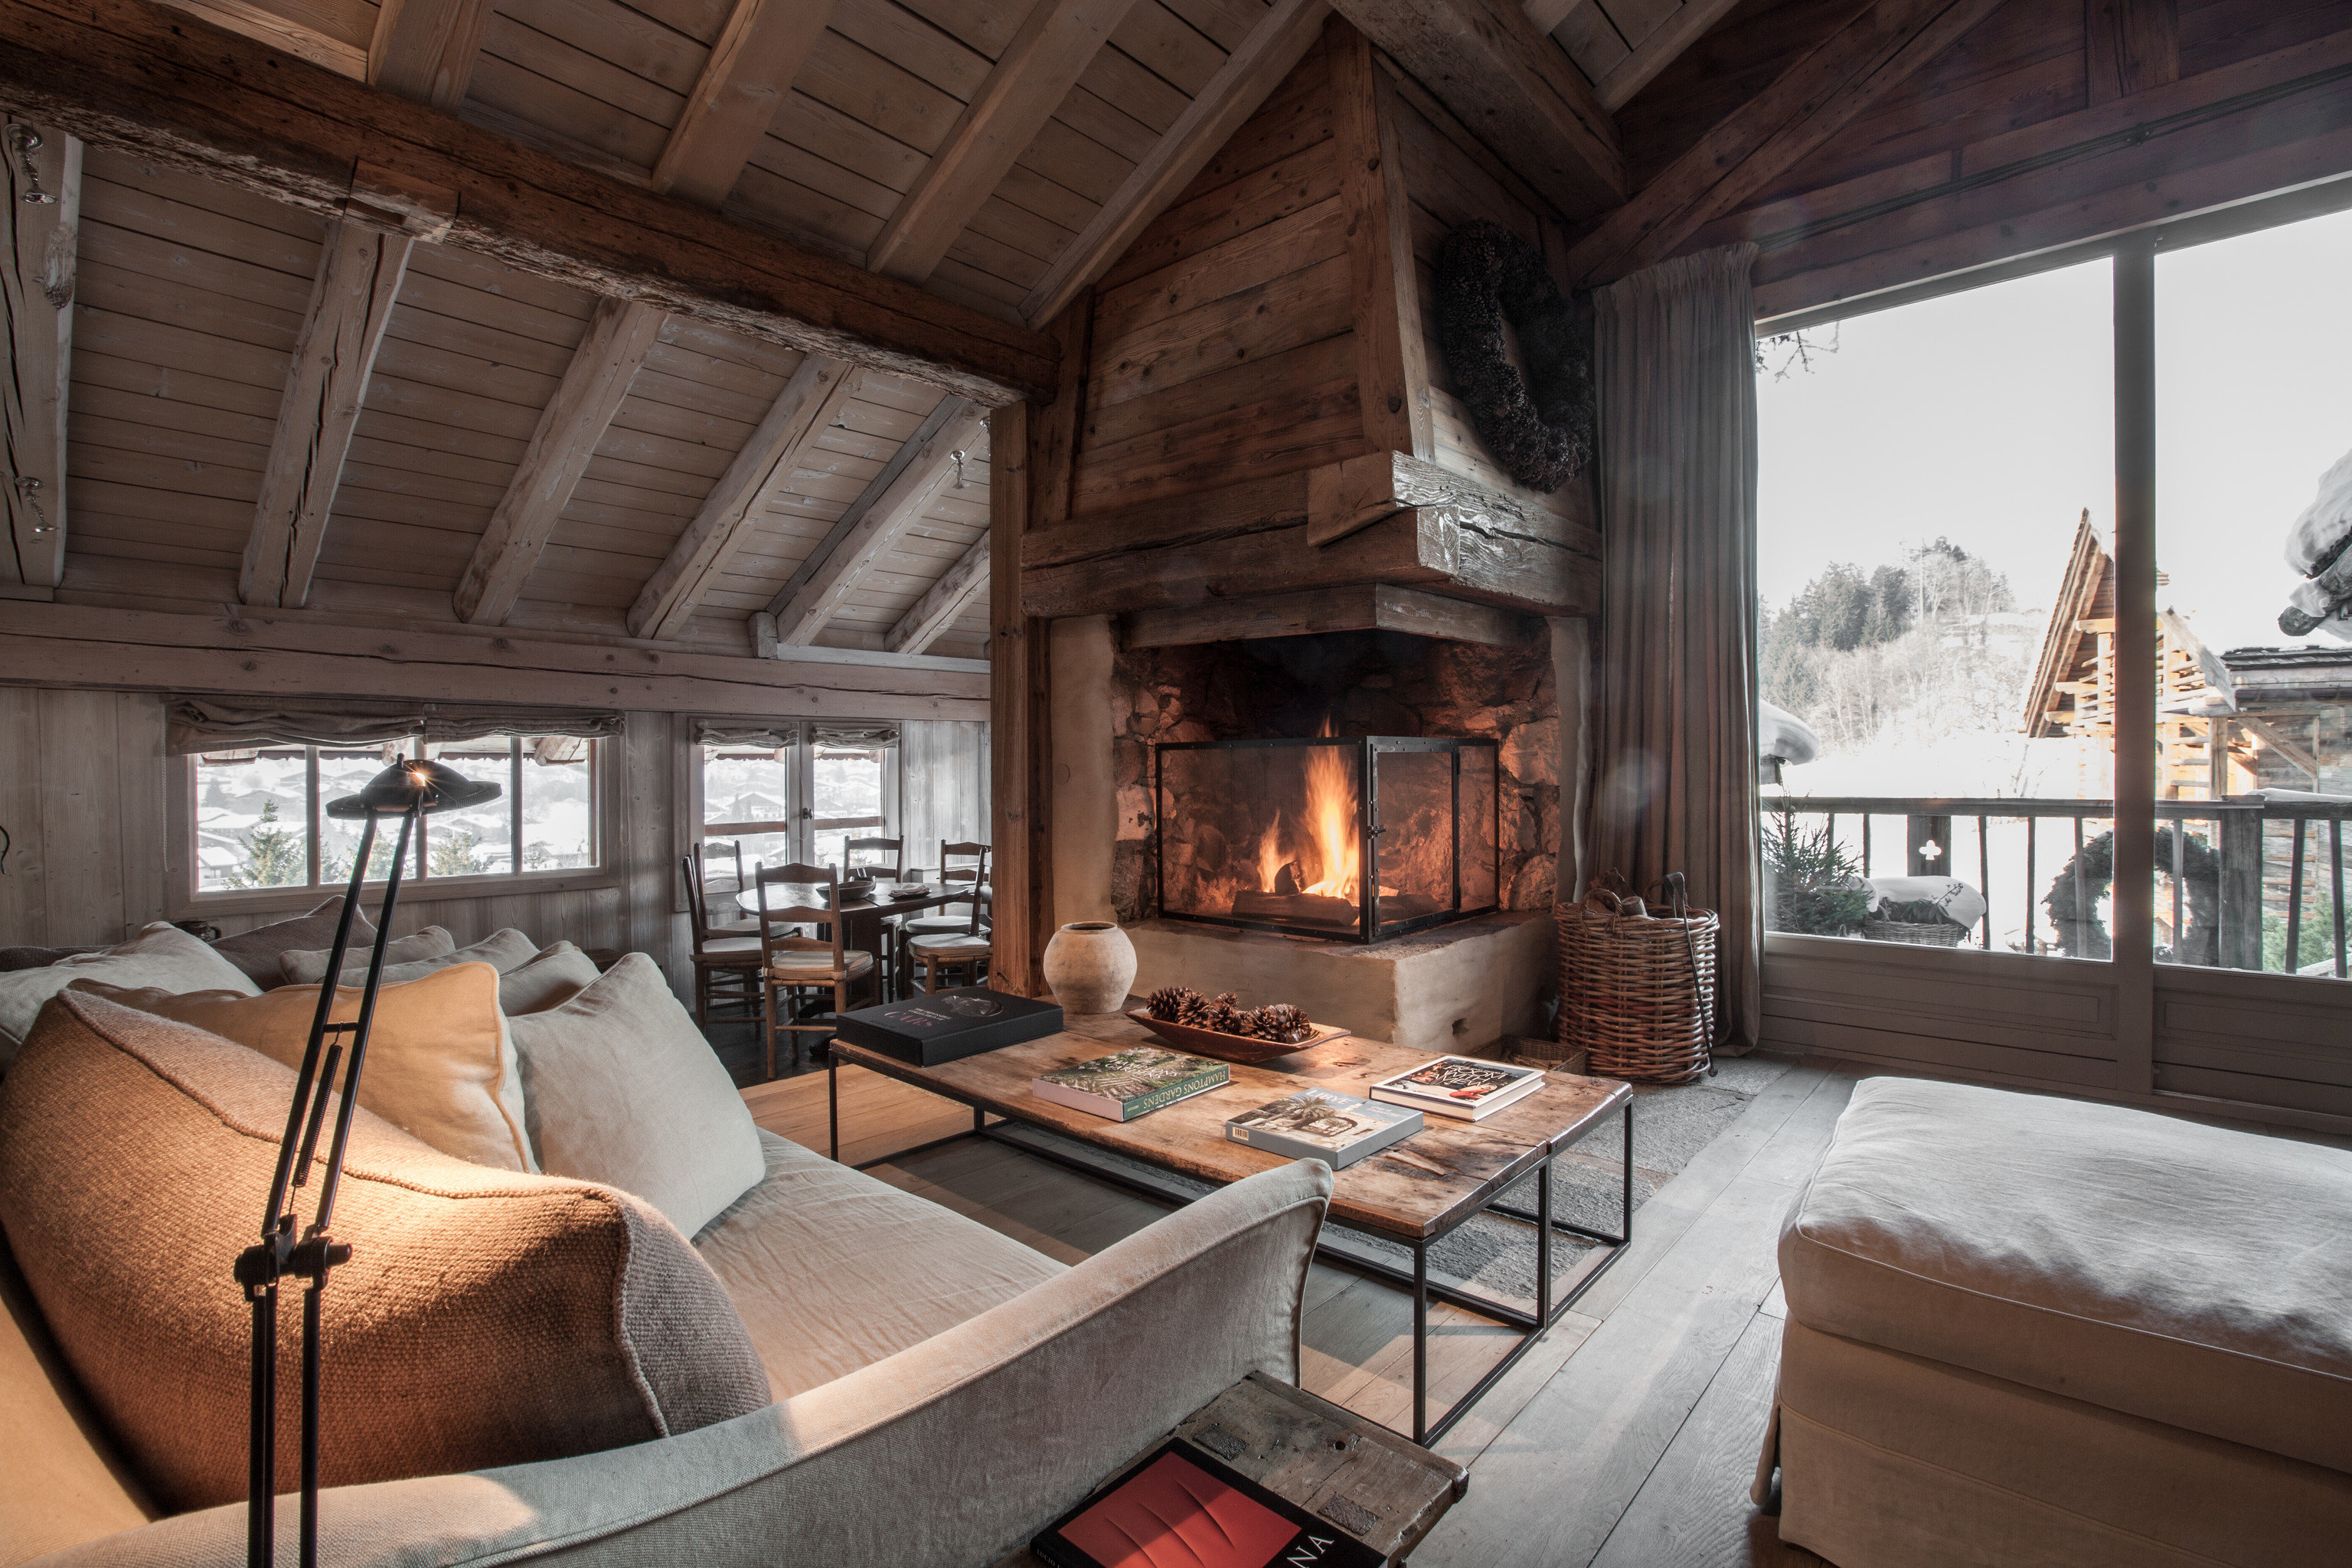 Secret Getaways Trip Ideas Winter indoor room window bed living room interior design Bedroom hearth wood Fireplace home real estate ceiling estate furniture stone